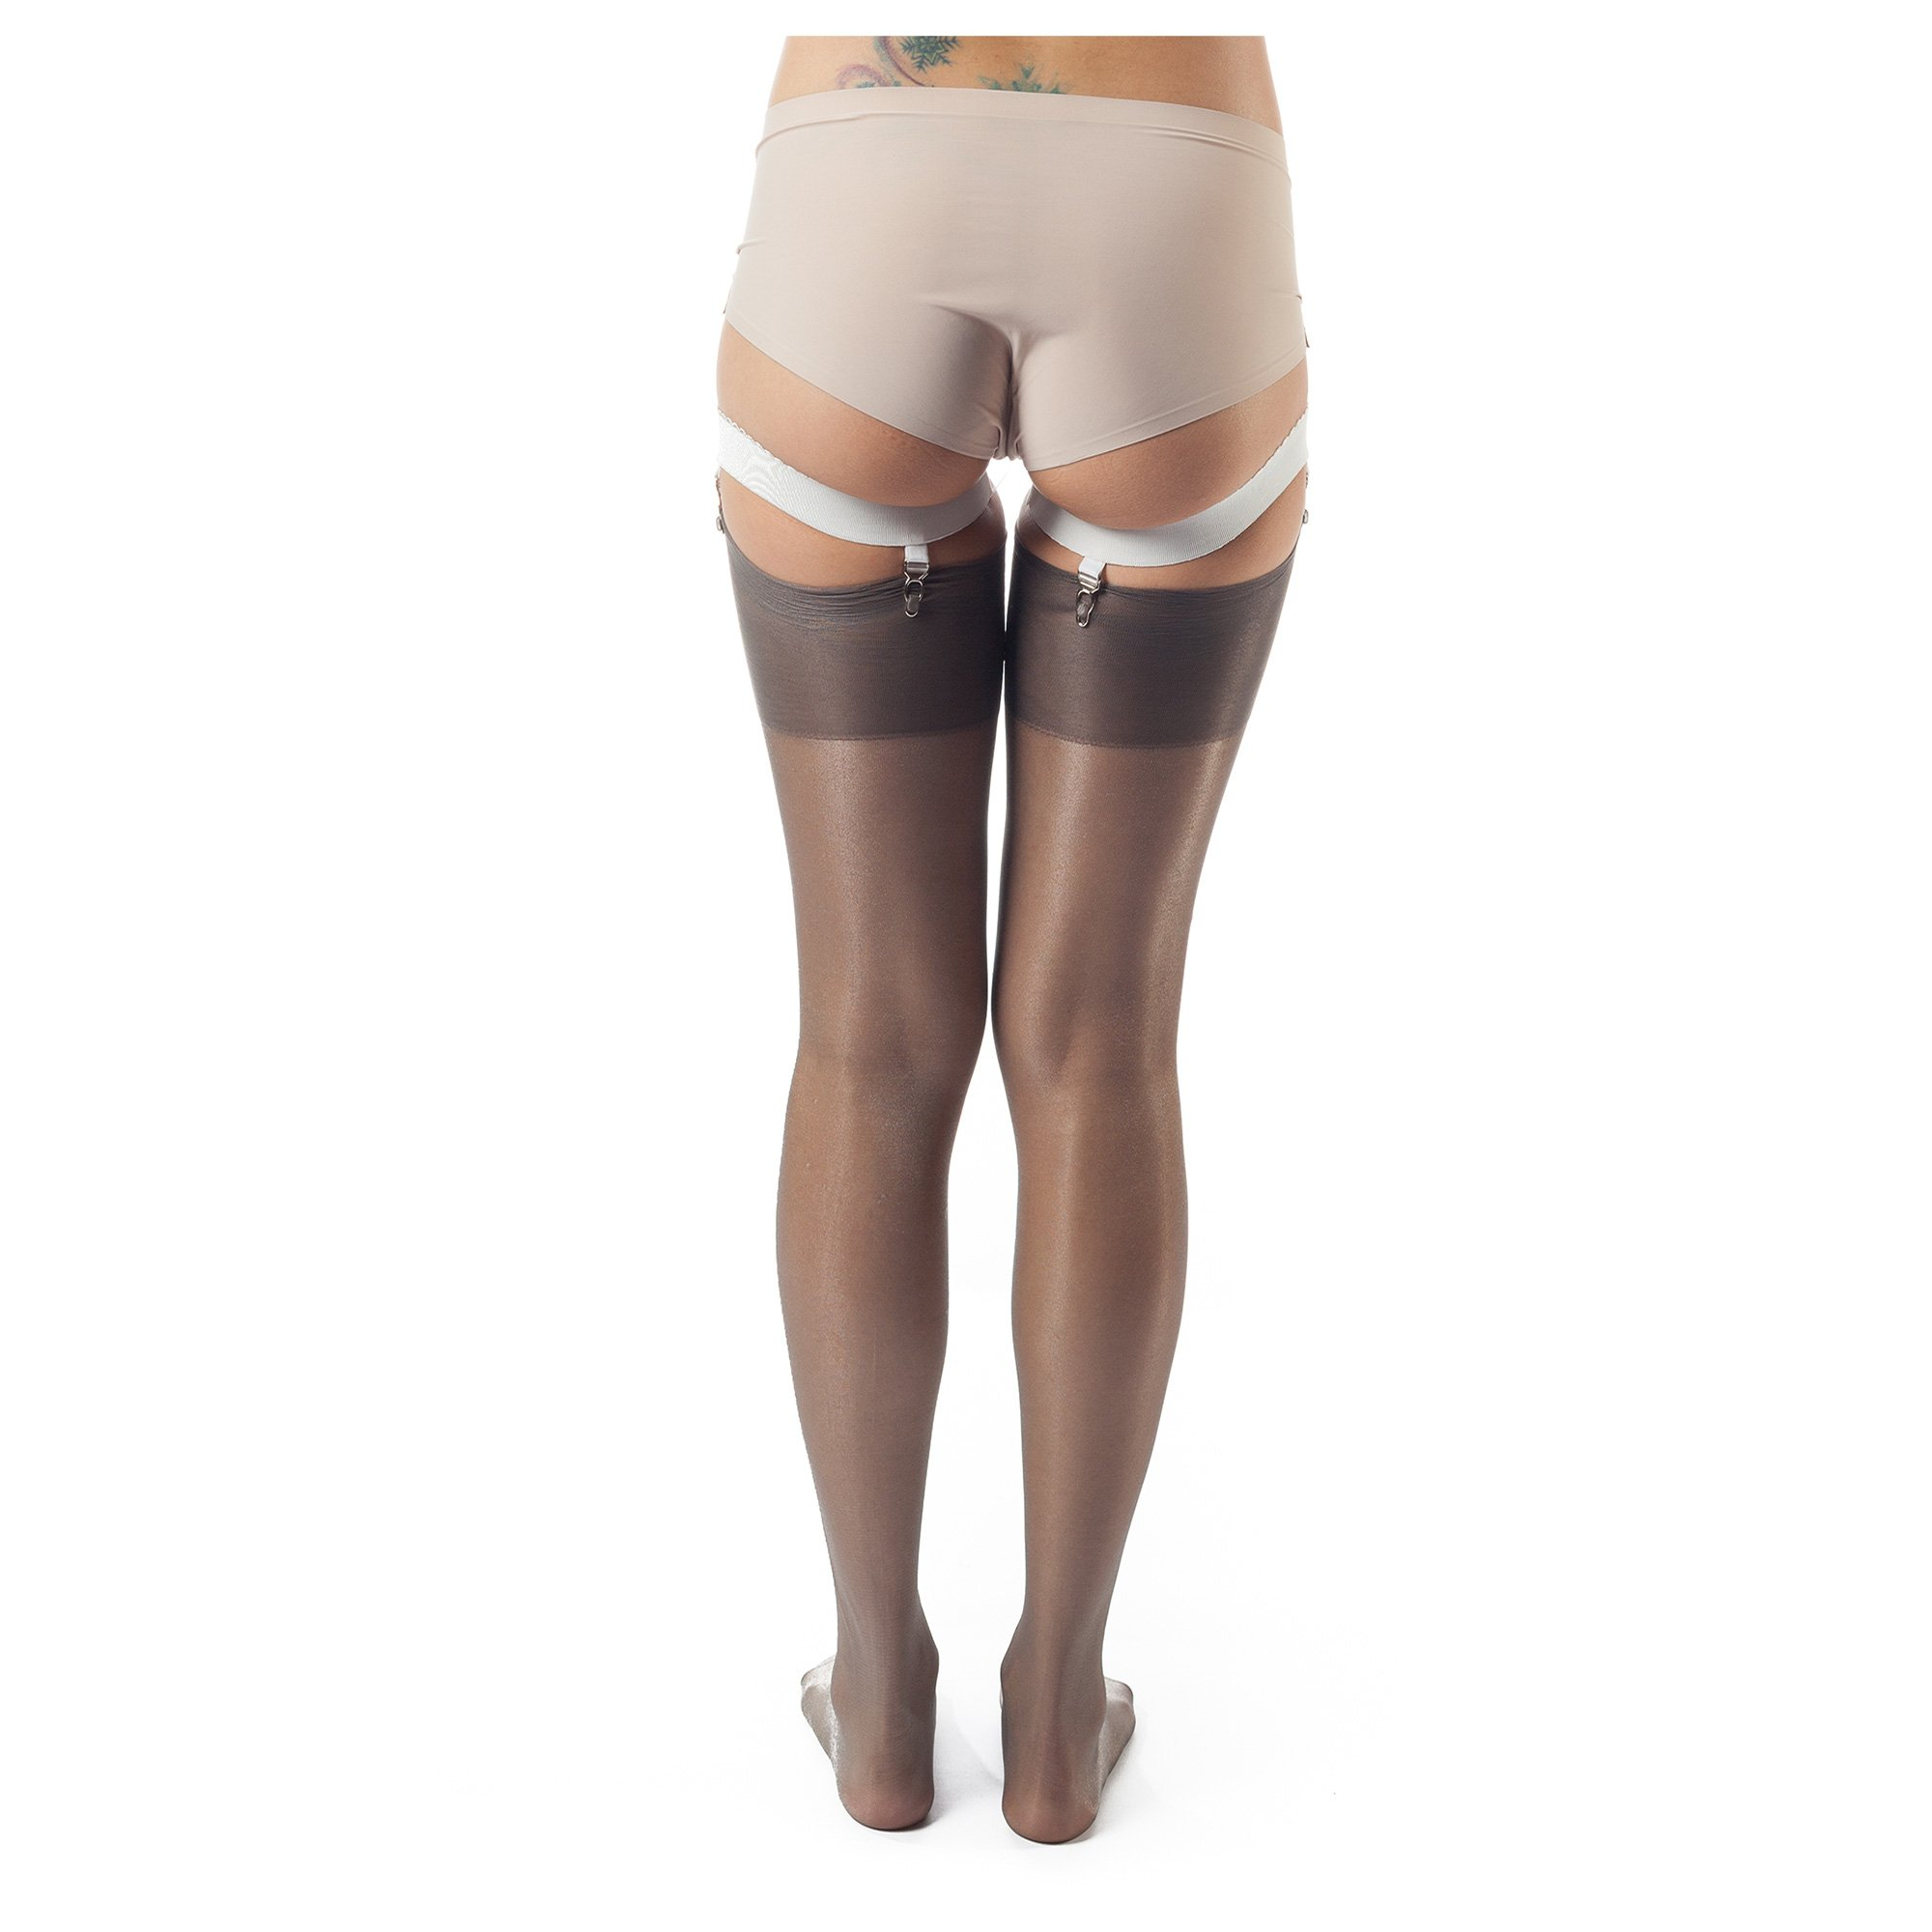 ElsaYX Women's Classic Pure Nylon Glossy Thigh High Stockings for use with Garter Belt Lingerie,3 Pairs-black/Beige/Grey,L (Height 5'2''-5'6'') by ElsaYX (Image #4)